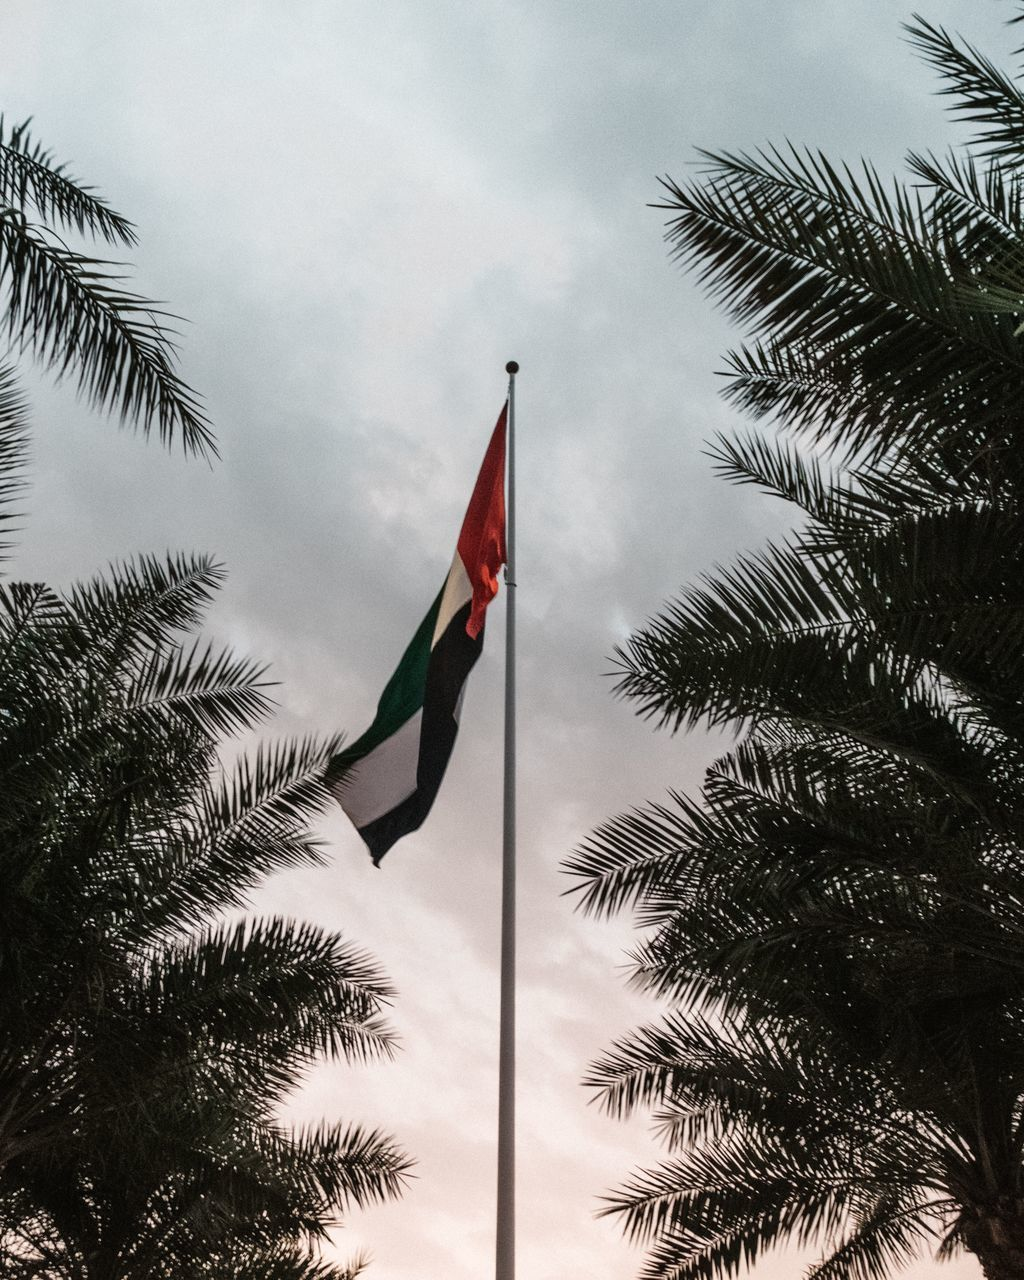 flag, tree, patriotism, low angle view, plant, sky, nature, growth, palm tree, cloud - sky, day, tropical climate, no people, pole, wind, pride, outdoors, environment, leaf, palm leaf